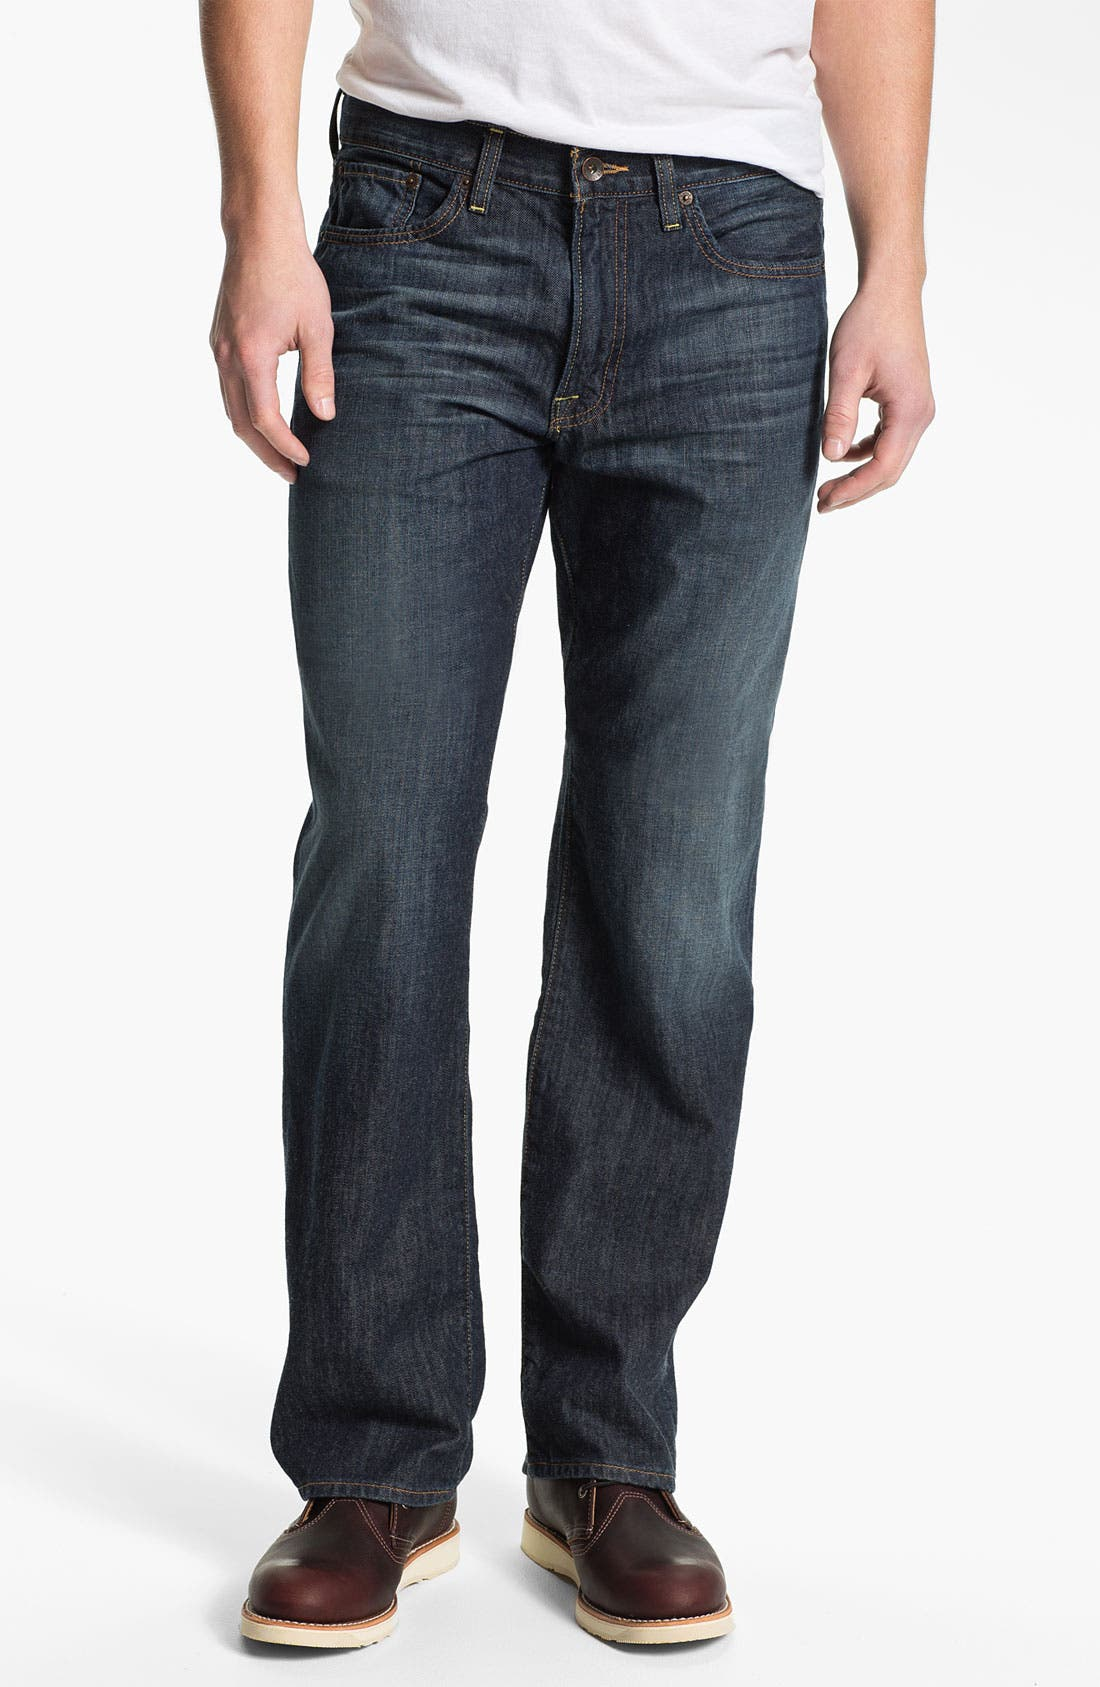 Alternate Image 1 Selected - Lucky Brand '361 Vintage' Straight Leg Jeans (Dark Bordeaux)